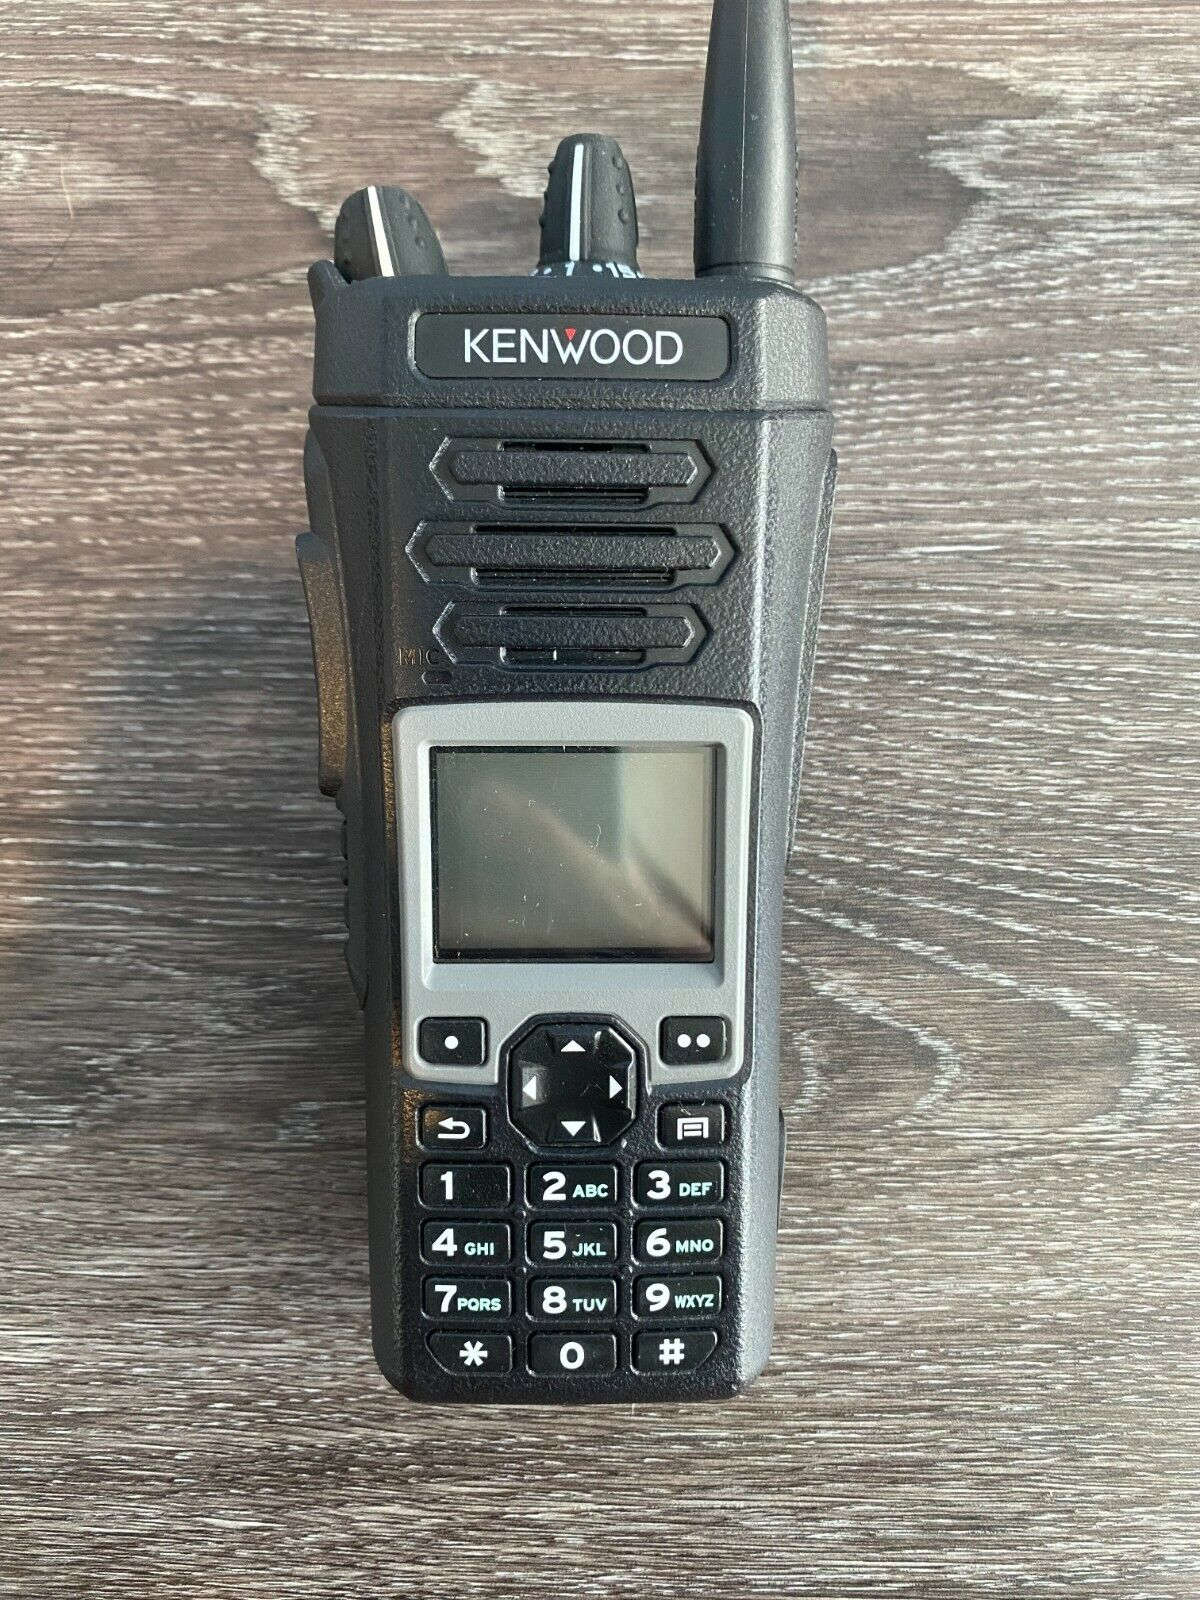 Kenwood Radio VP6430-F3 700/800MHz. Available Now for 1250.00